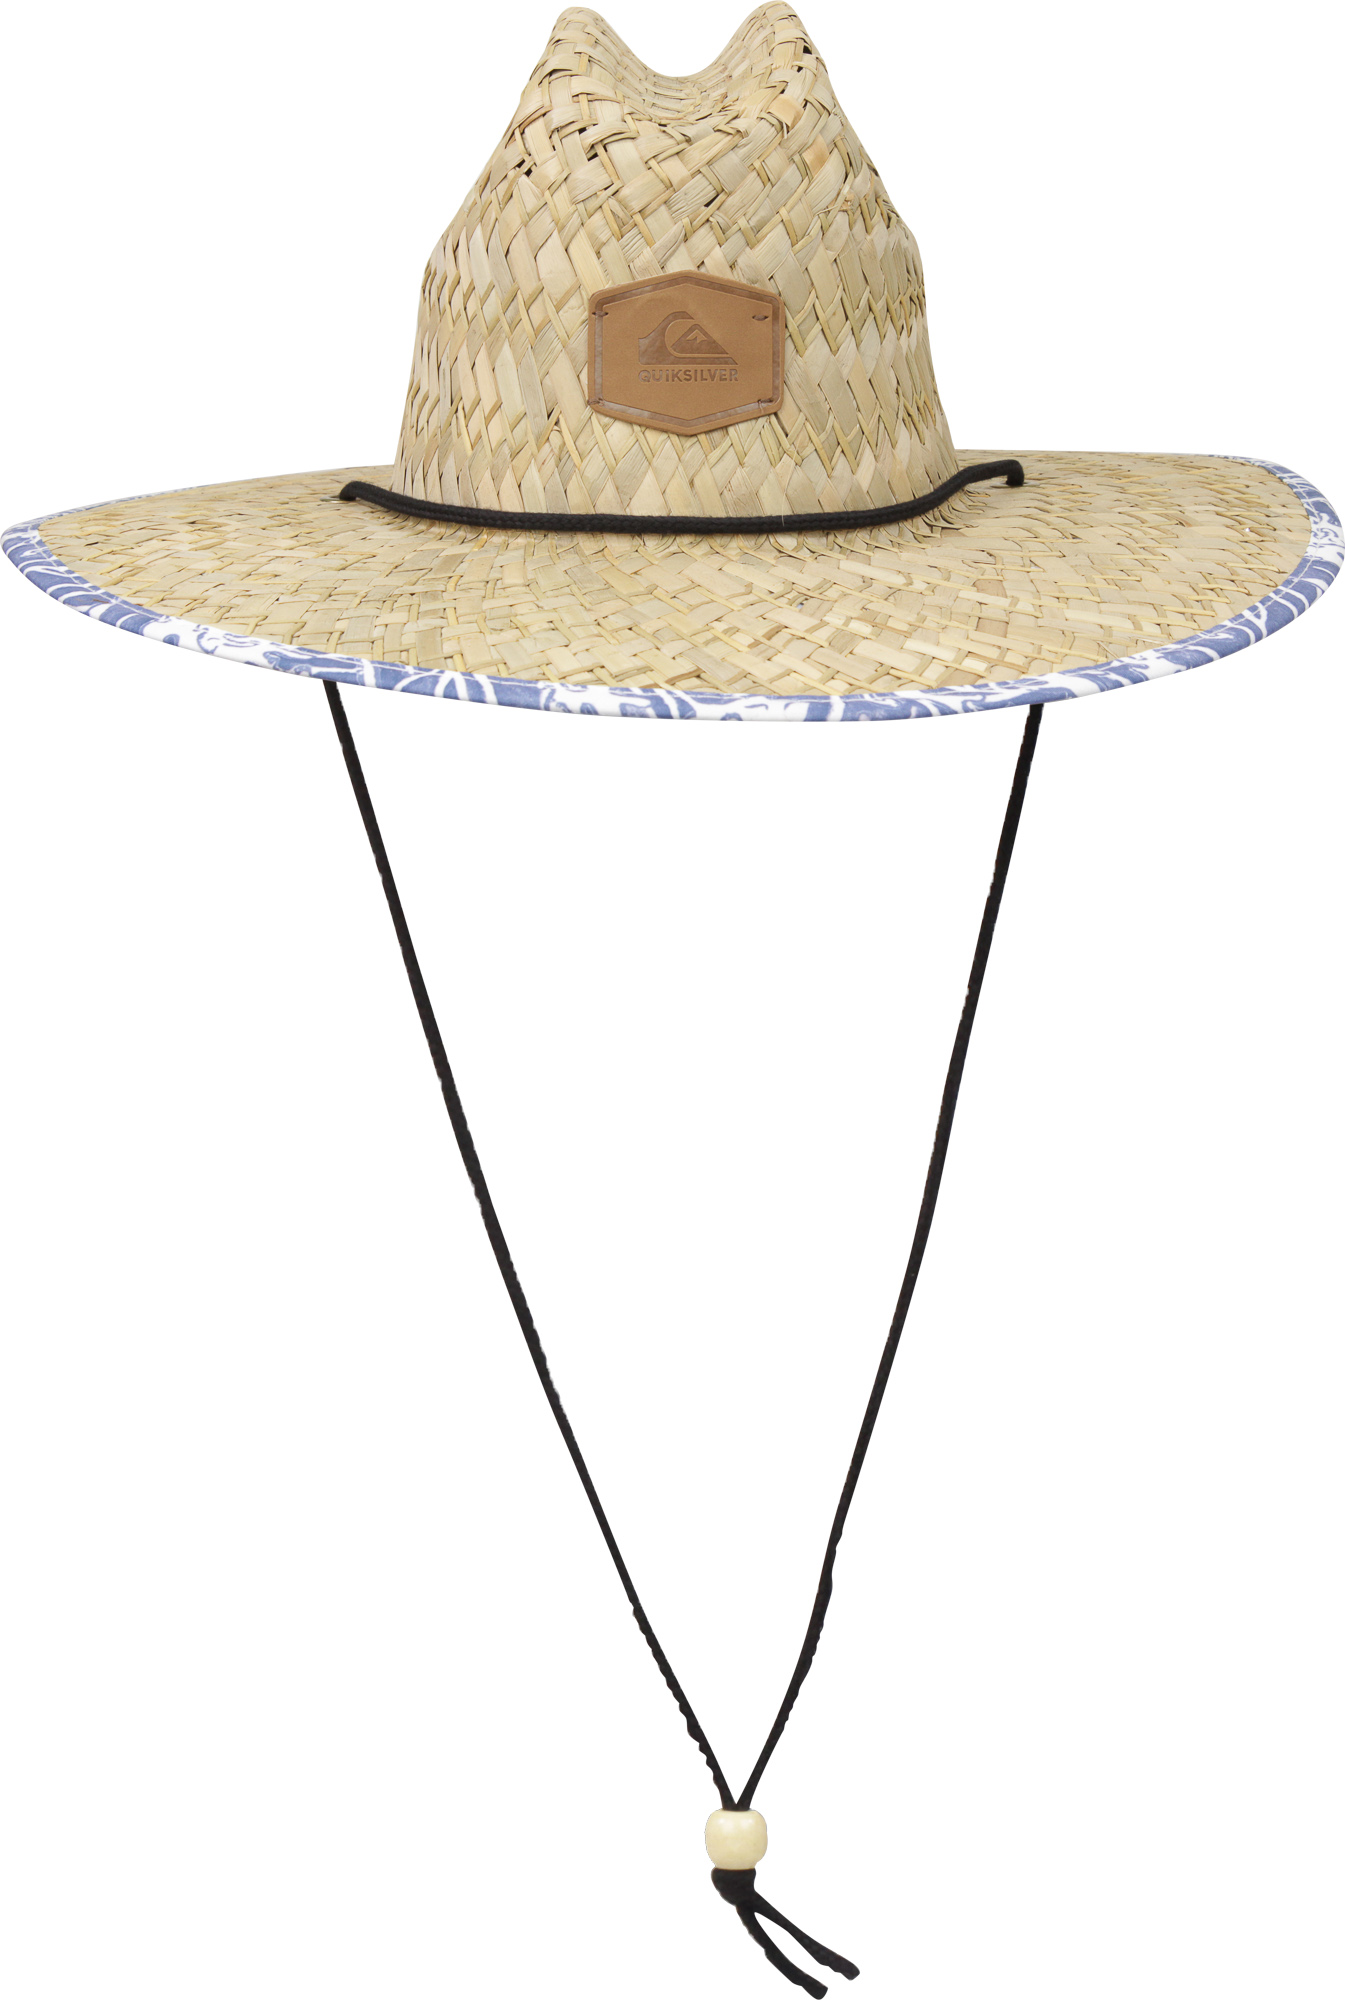 Details about Quiksilver Mens Outsider Wide Brim Straw Sun Hat - Straw Bijou  Blue 0e514b08b48a